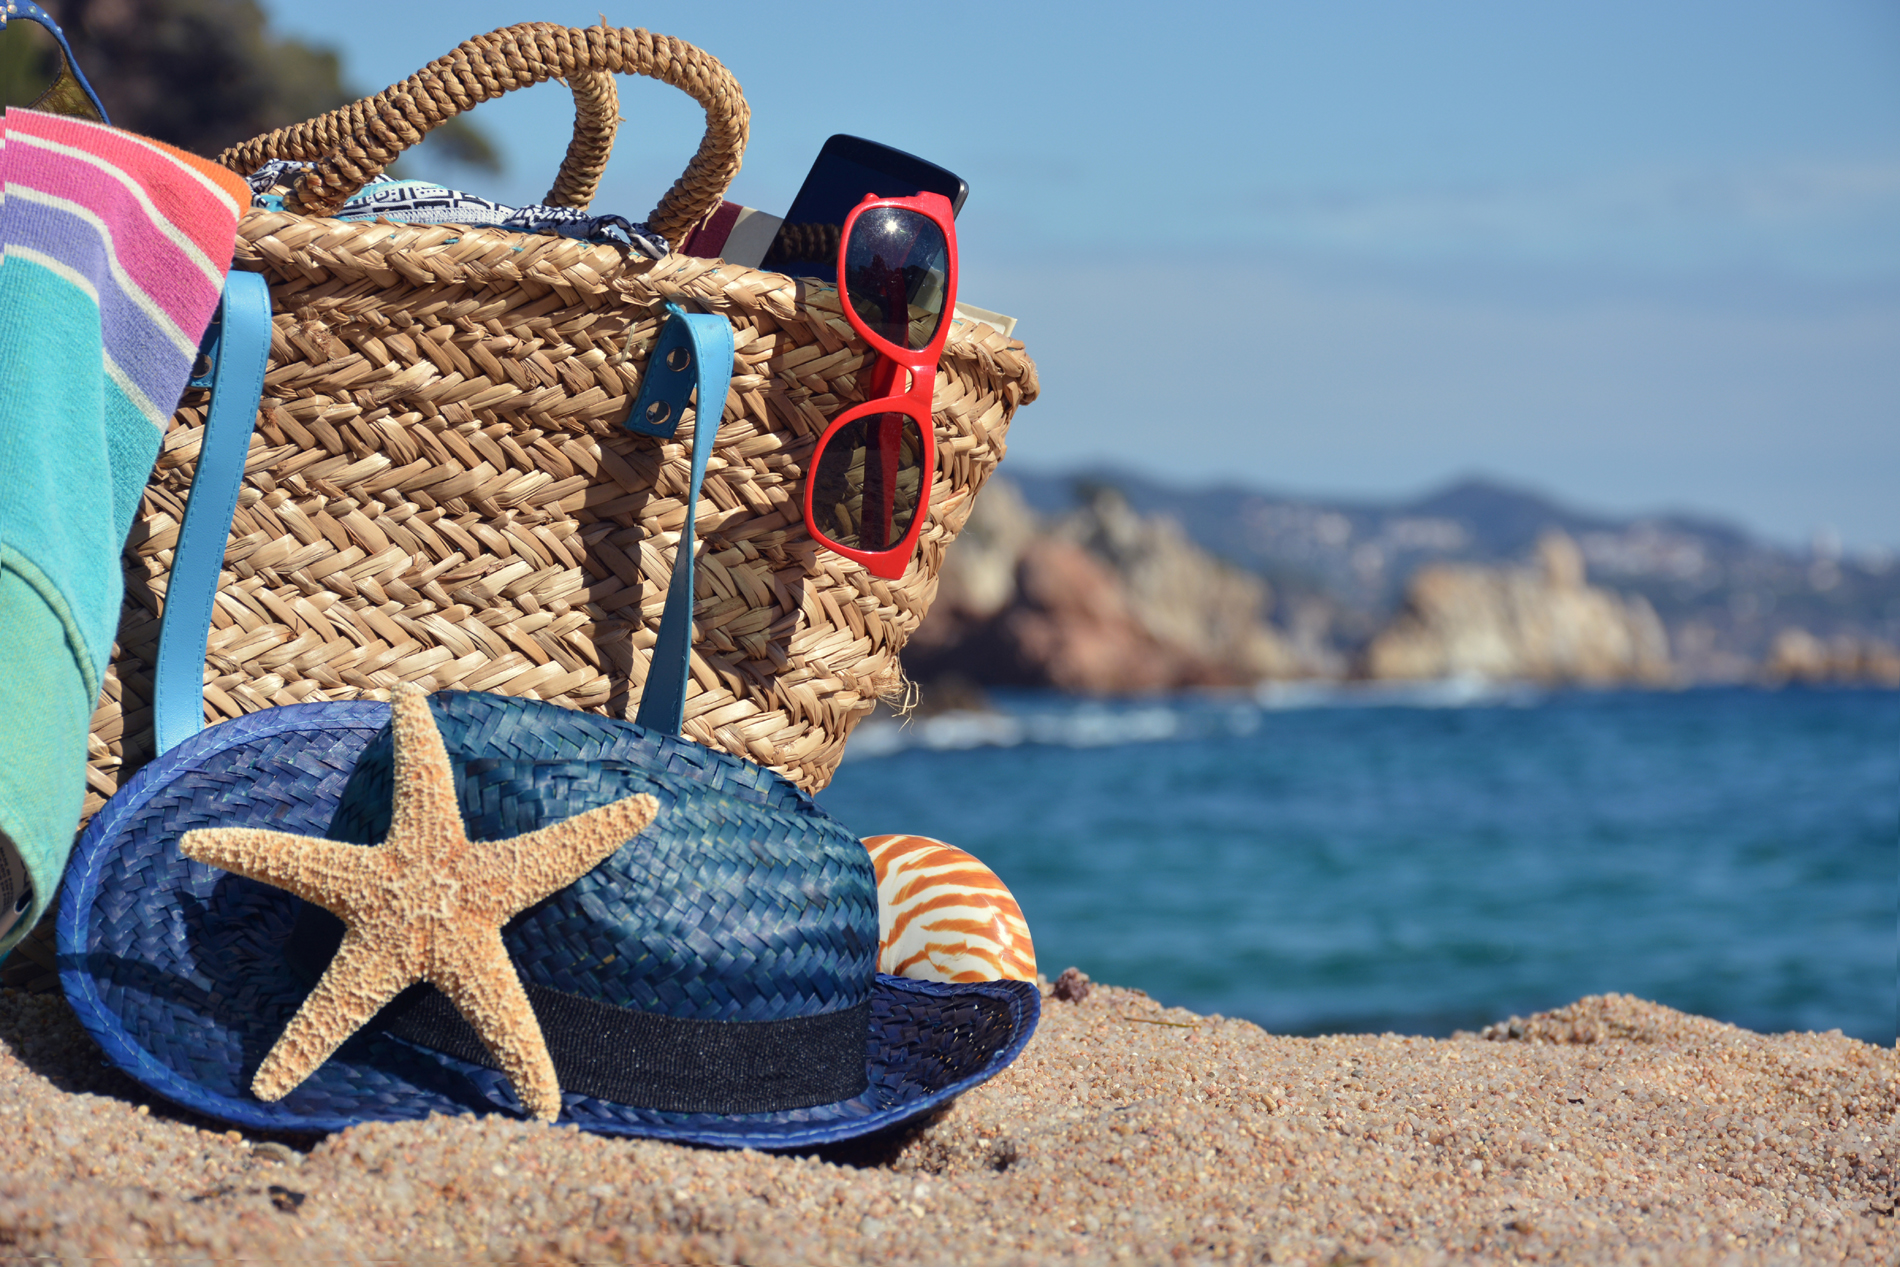 Starfish on the beach Hat 53341